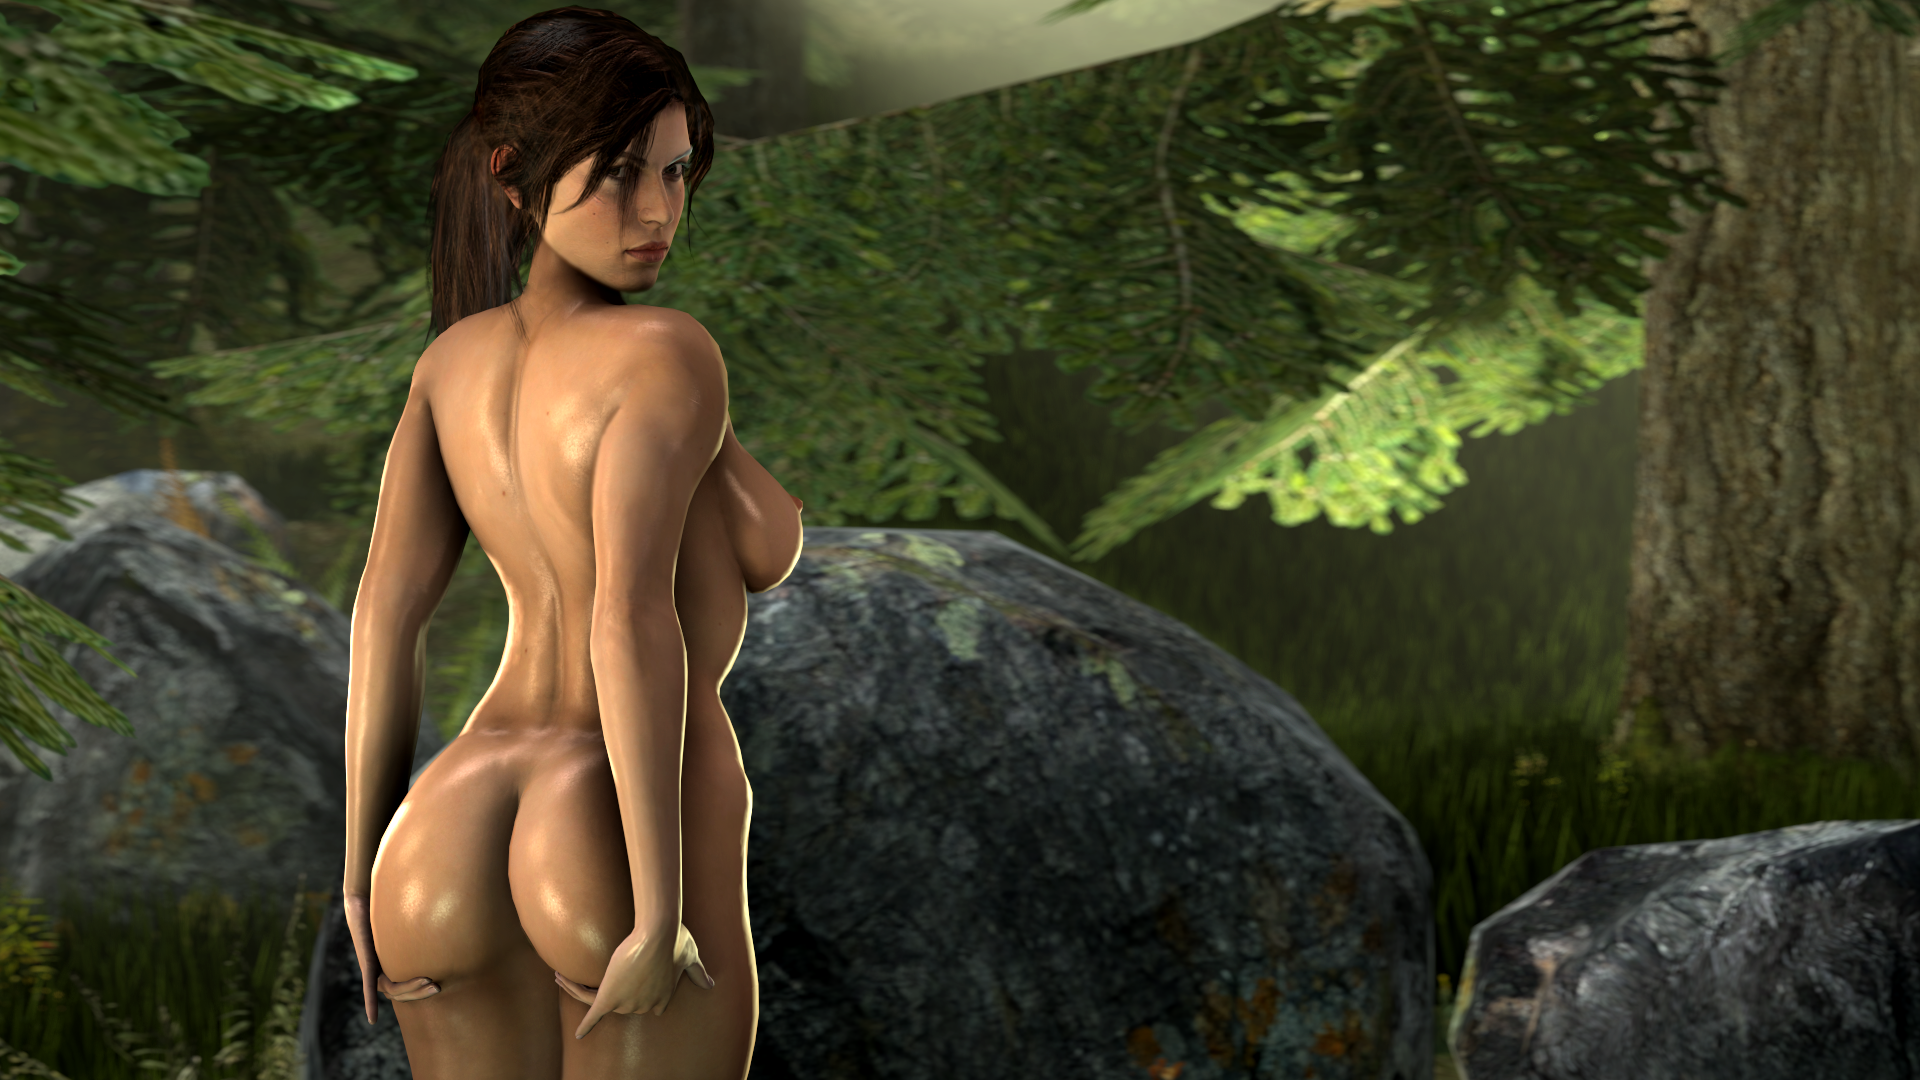 Erotic photo of lara croft